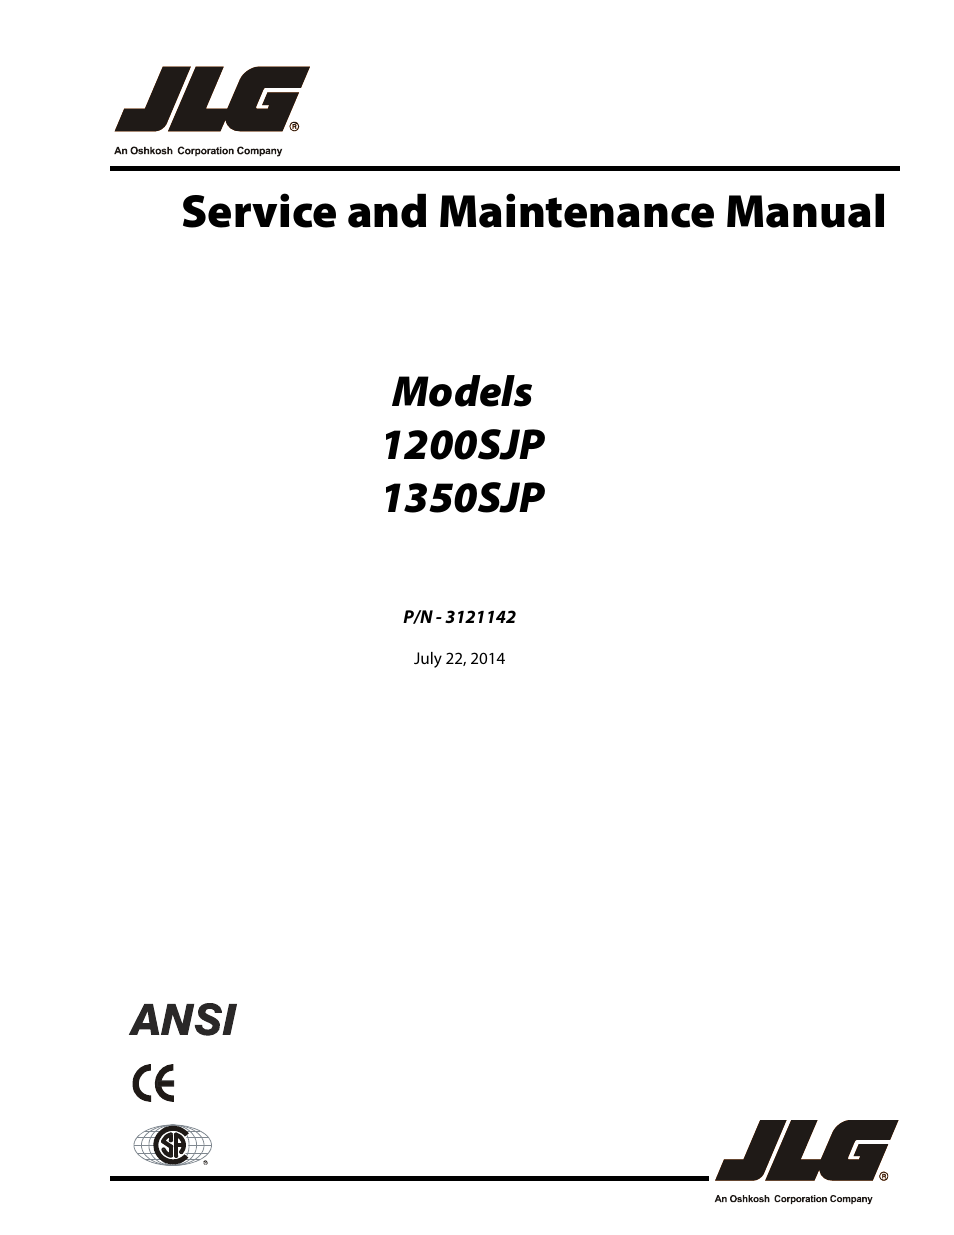 jlg sjp service manual user manual pages also for jlg 1350sjp service manual user manual 554 pages also for 1200sjp service manual